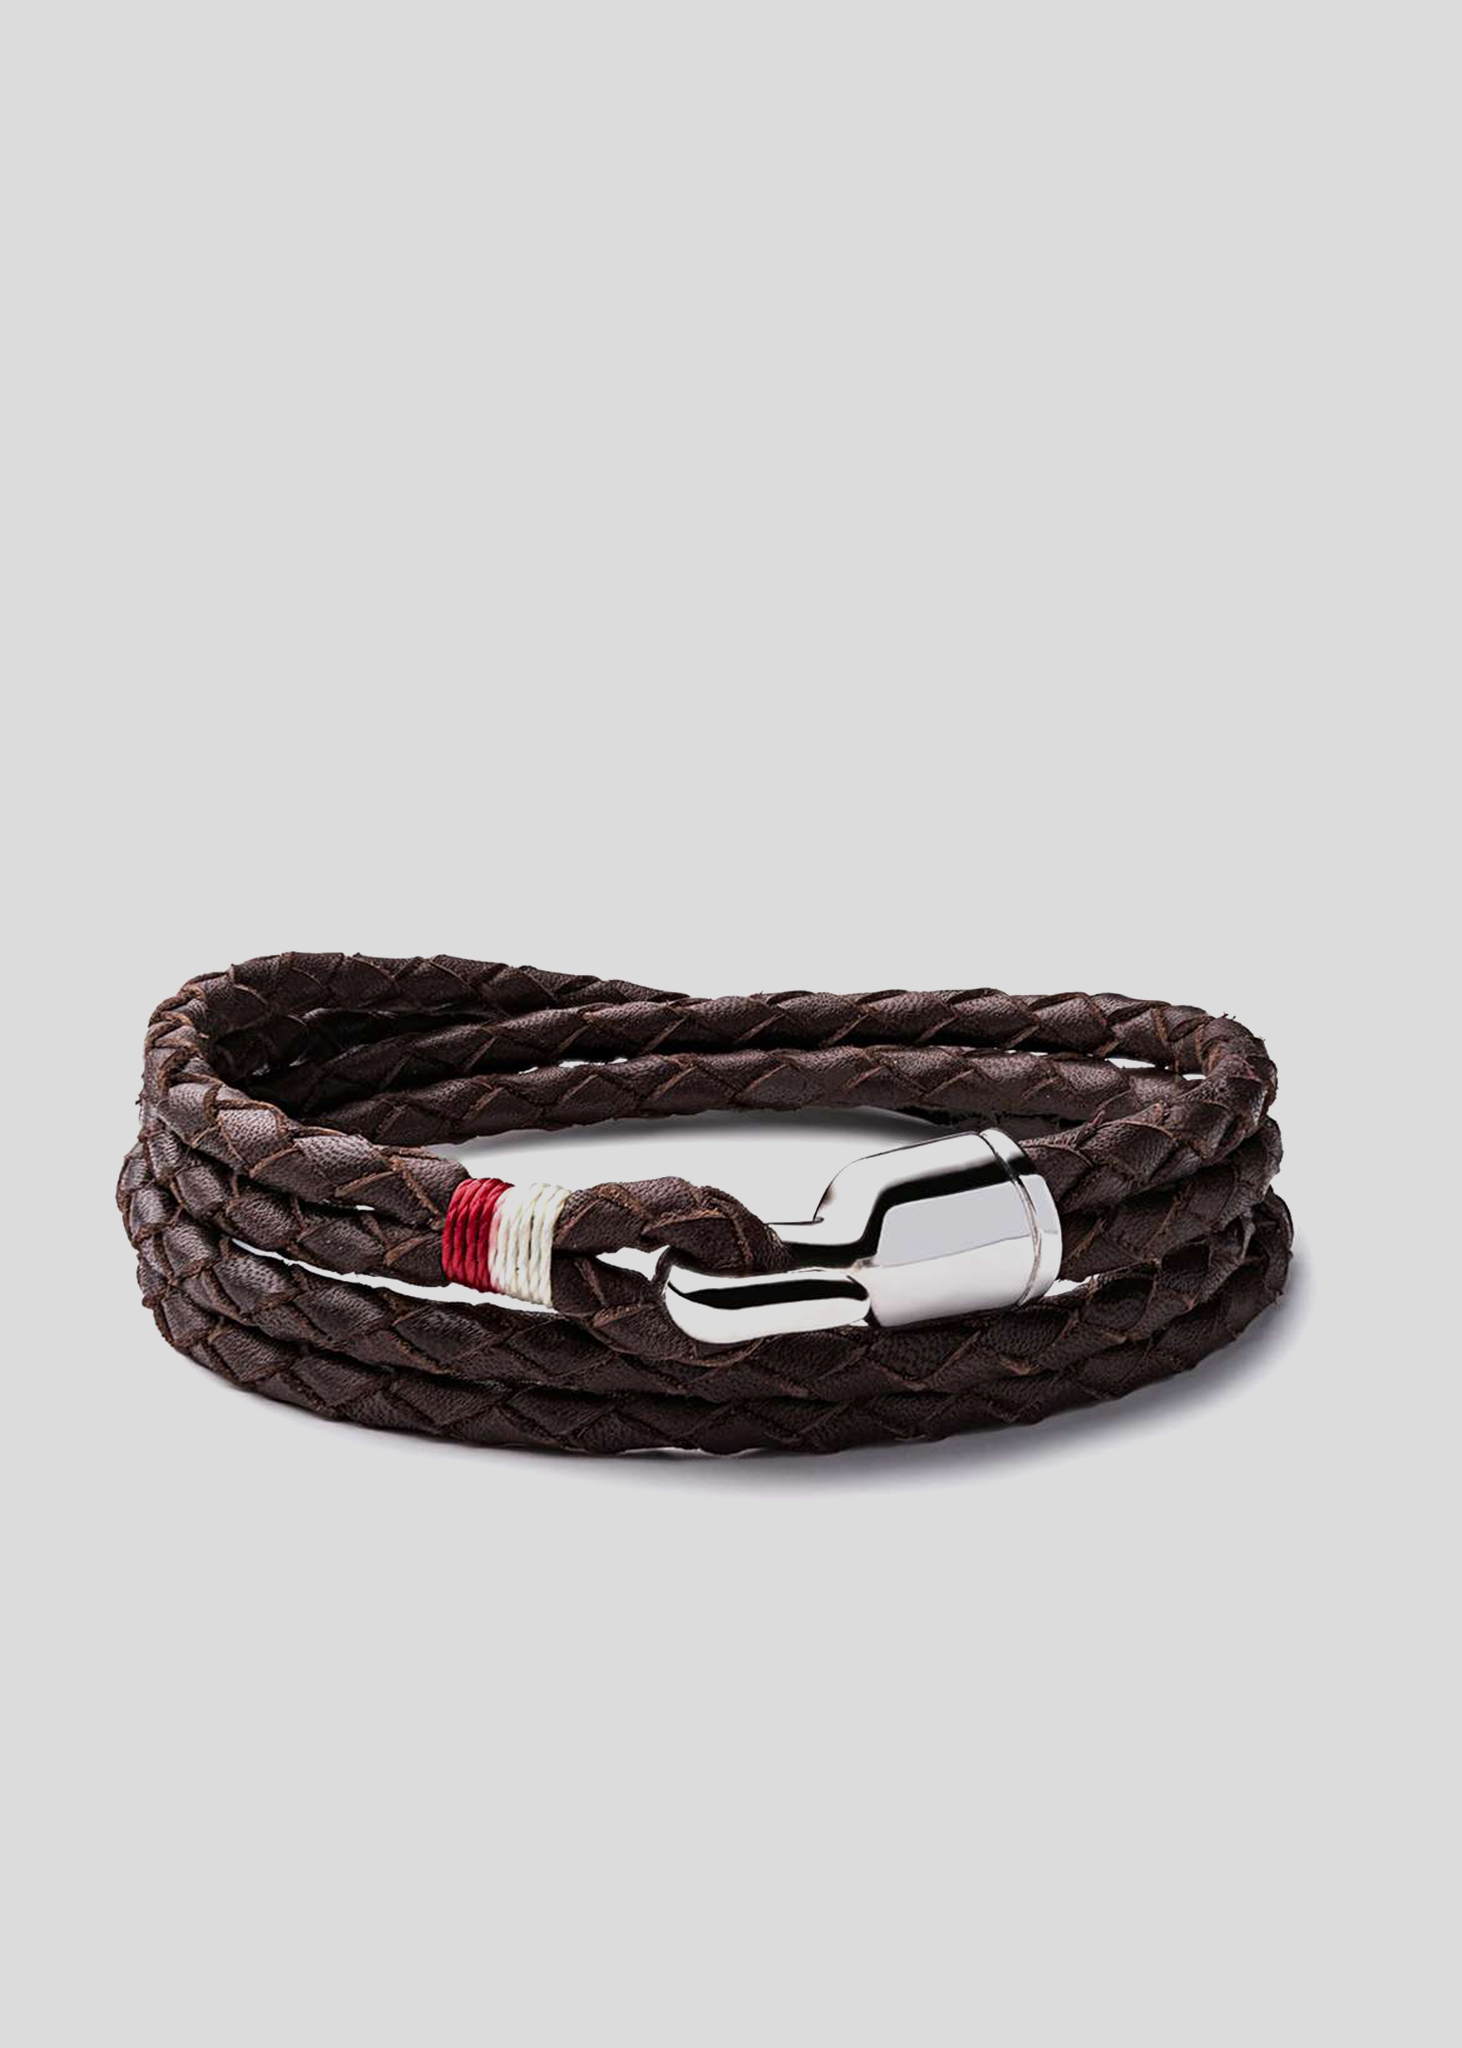 Trice Bracelet Brown/White/Red